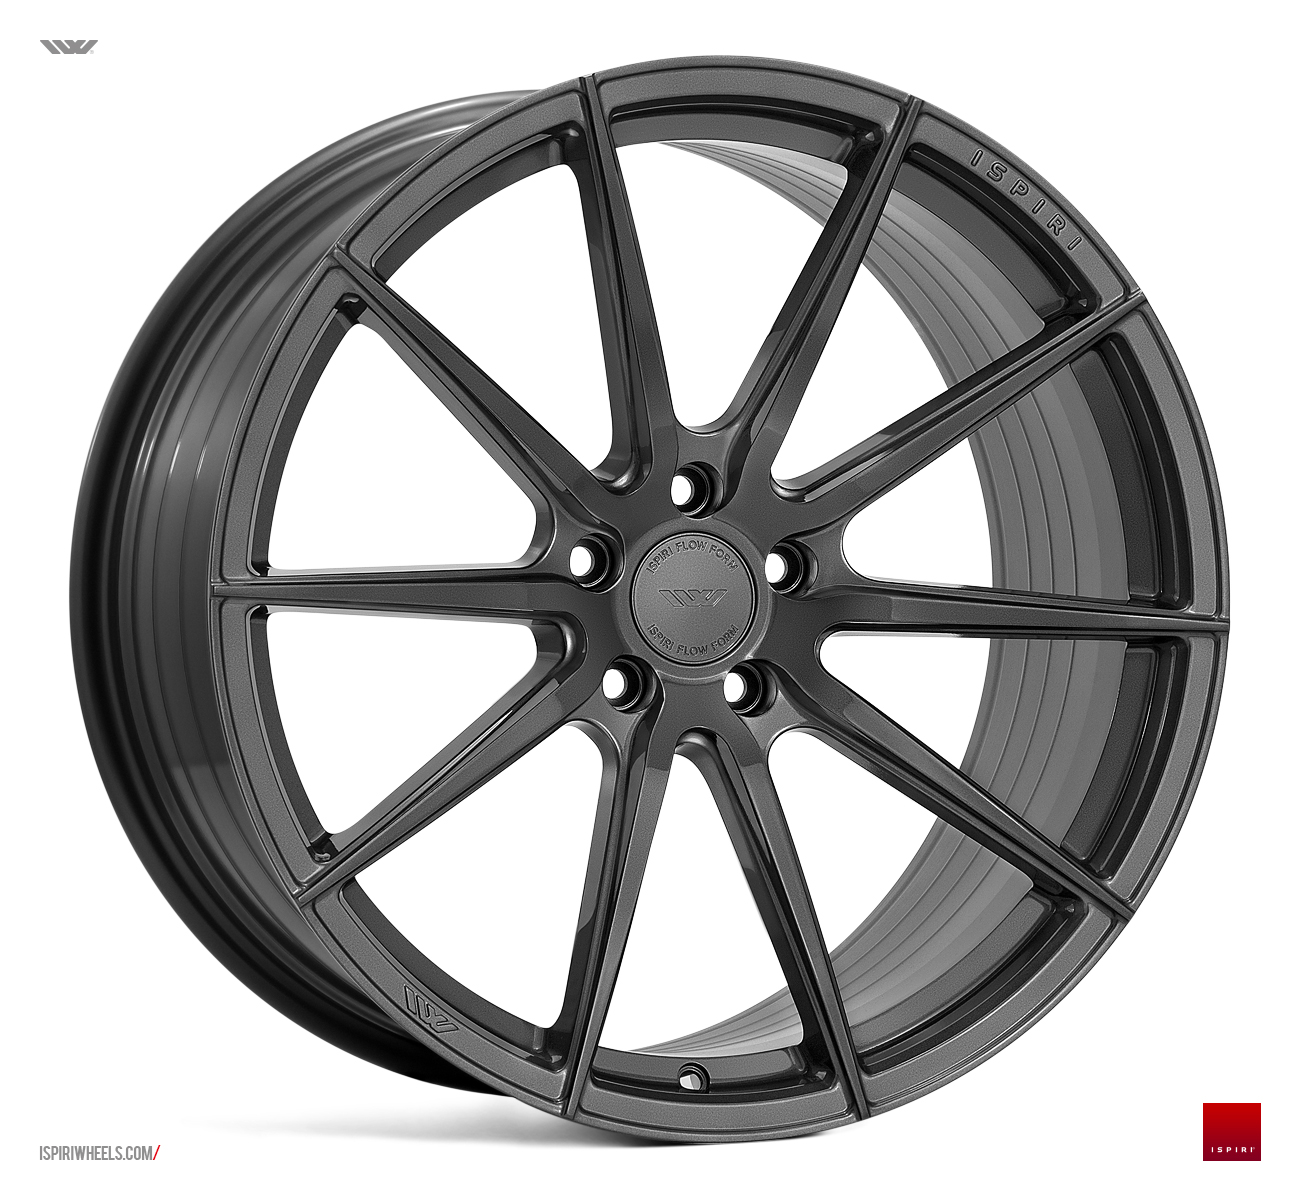 "NEW 20"" ISPIRI FFR1 MULTI-SPOKE ALLOY WHEELS IN CARBON GRAPHITE, DEEPER CONCAVE REARS - VARIOUS FITMENTS AVAILABLE"